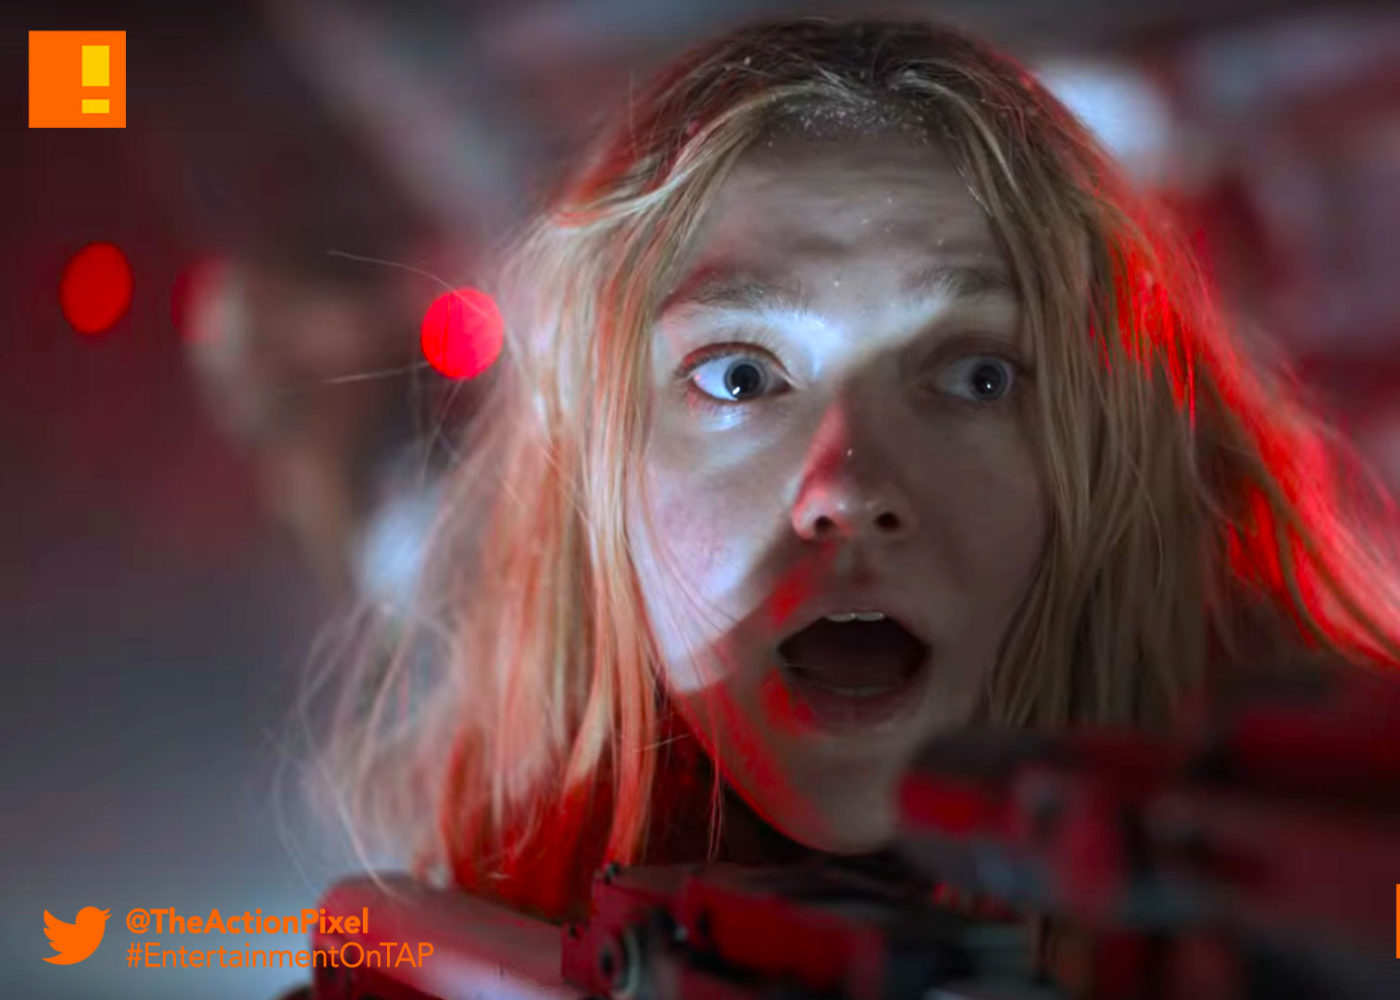 dakota fanning, zygote, zygote, neill blomkamp, neil blomkamp, oats studios, the action pixel, entertainment on tap,